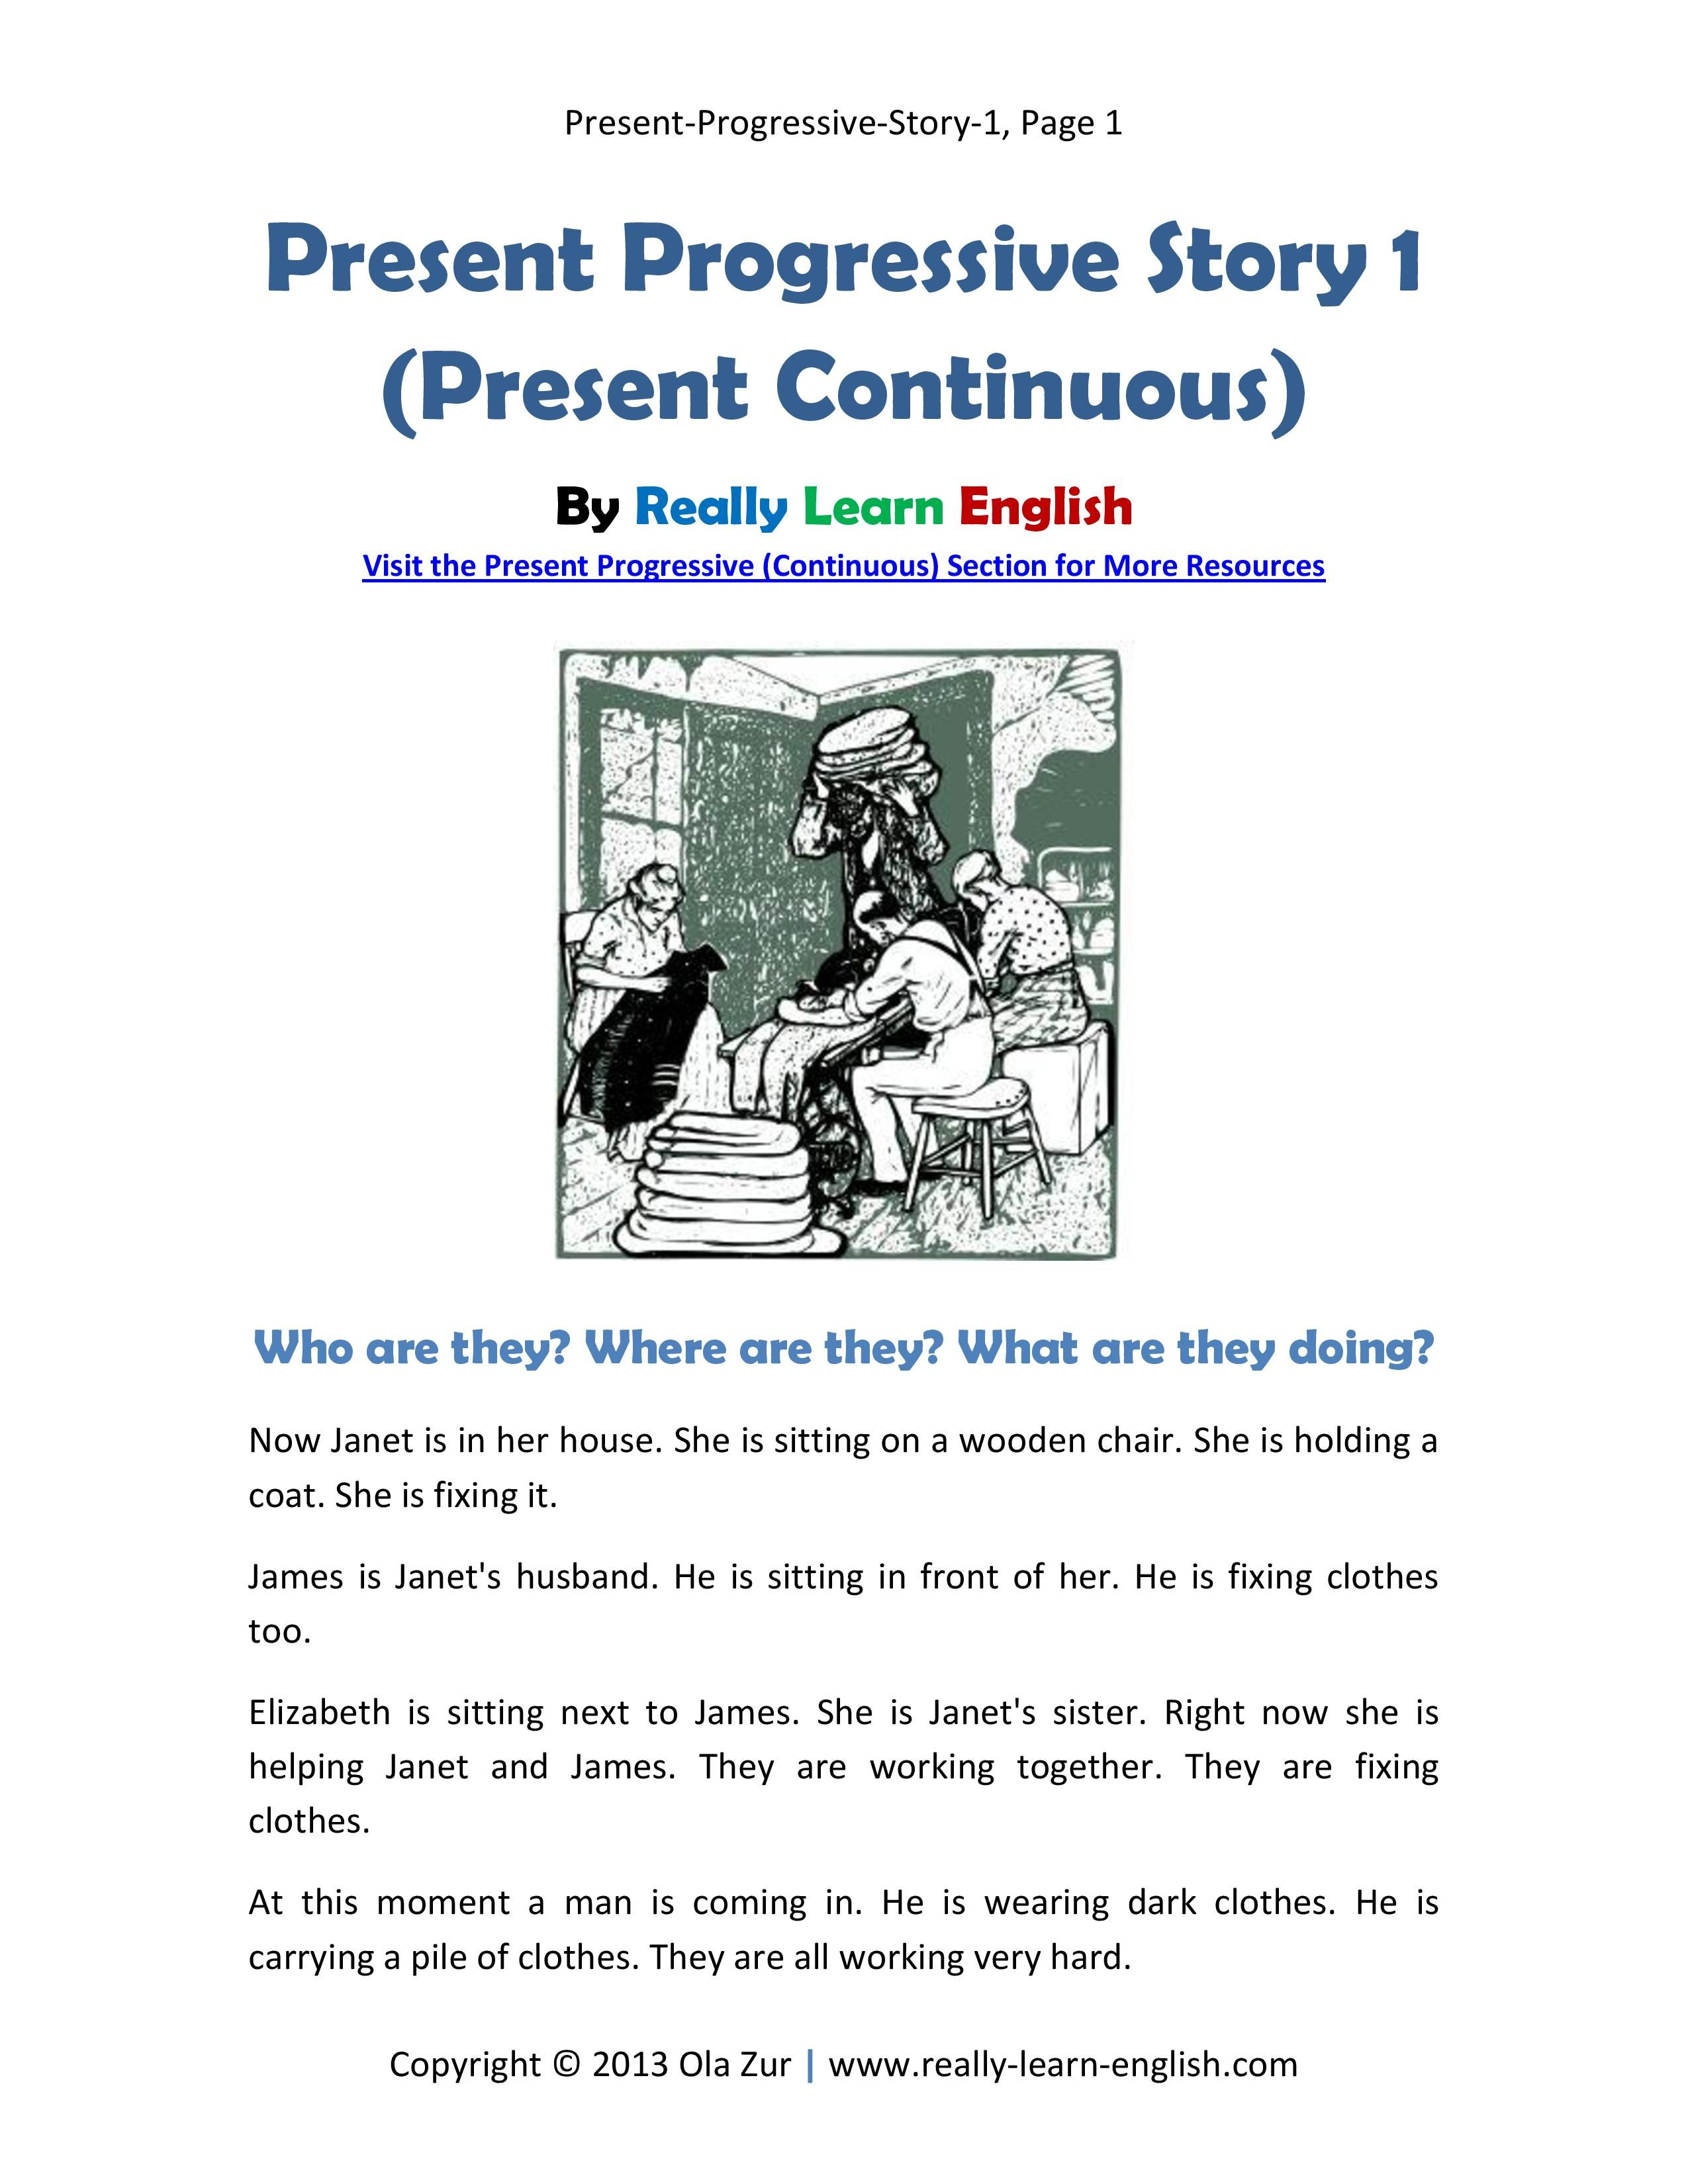 Free Printable Story And Exercises To Practice The Present Progressive Continuous Tense In Englis Reading Comprehension Lessons English Reading Learn English